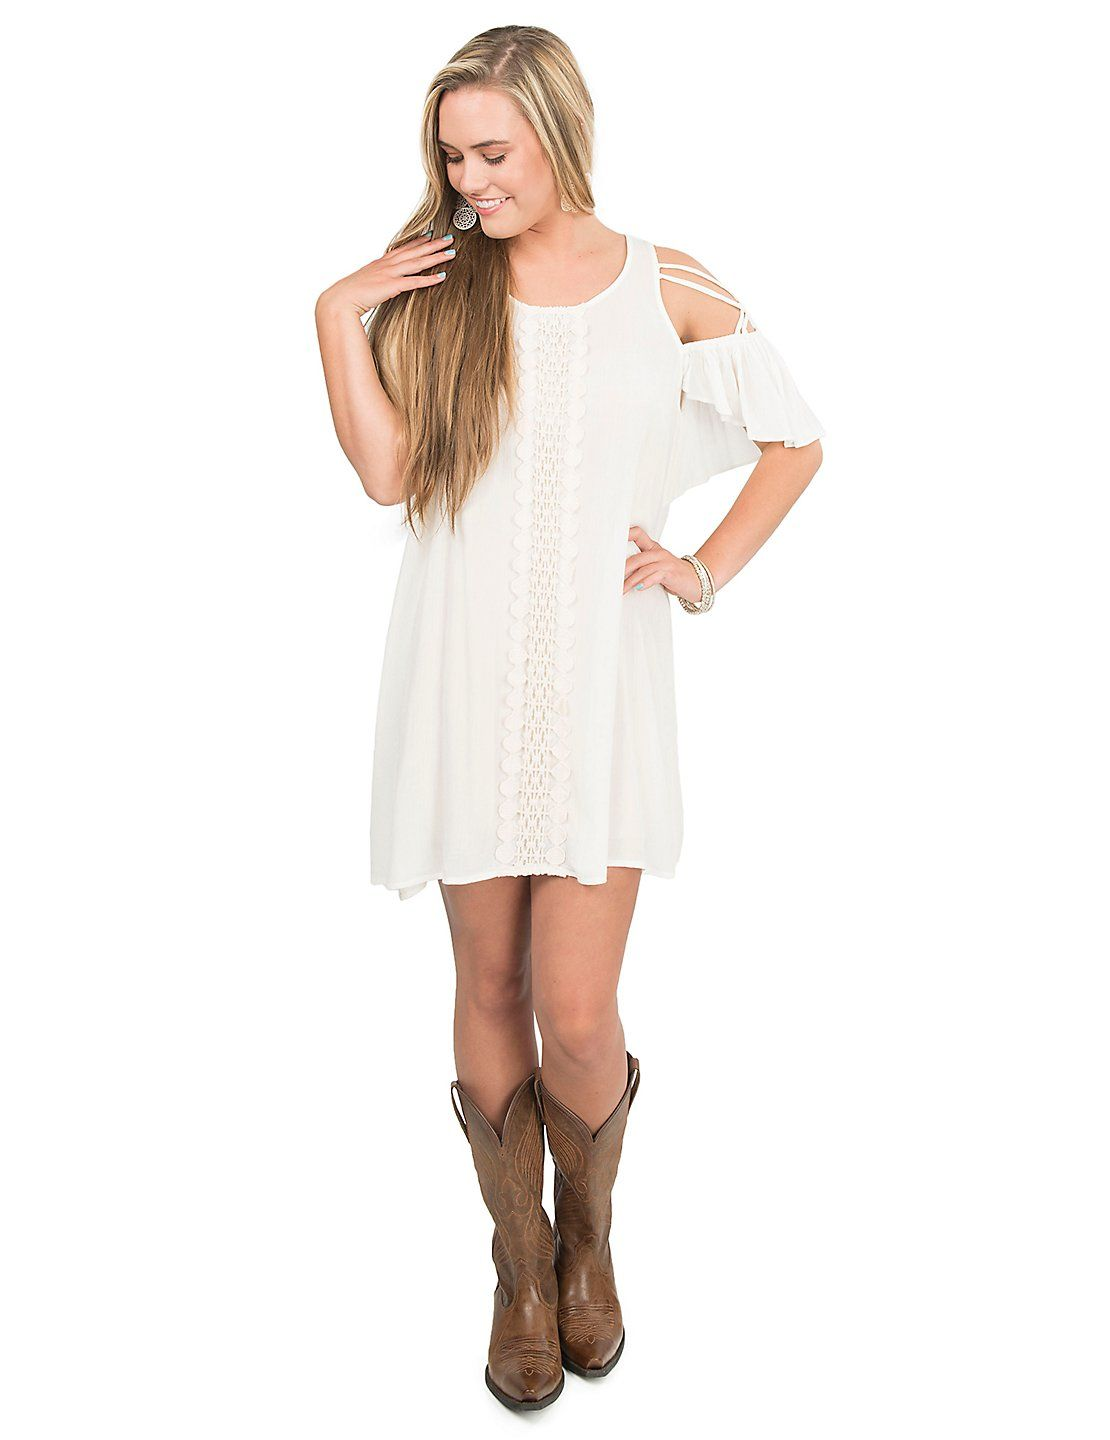 30f80bf9aaac Flying Tomato Women s Off White with Crochet Front and Open Shoulder Dress